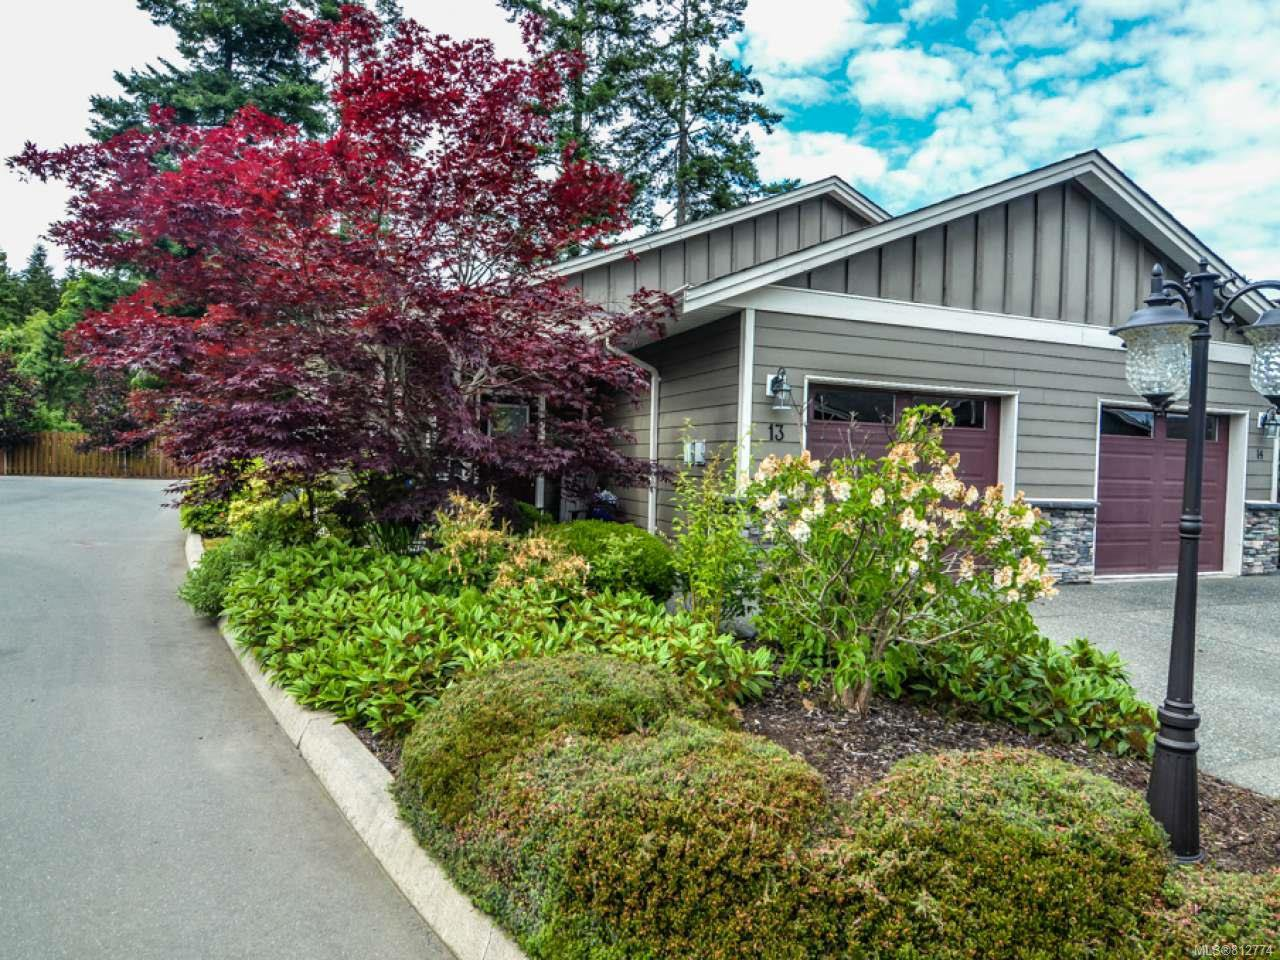 Main Photo: 13 346 Erickson Rd in CAMPBELL RIVER: CR Willow Point Row/Townhouse for sale (Campbell River)  : MLS®# 812774